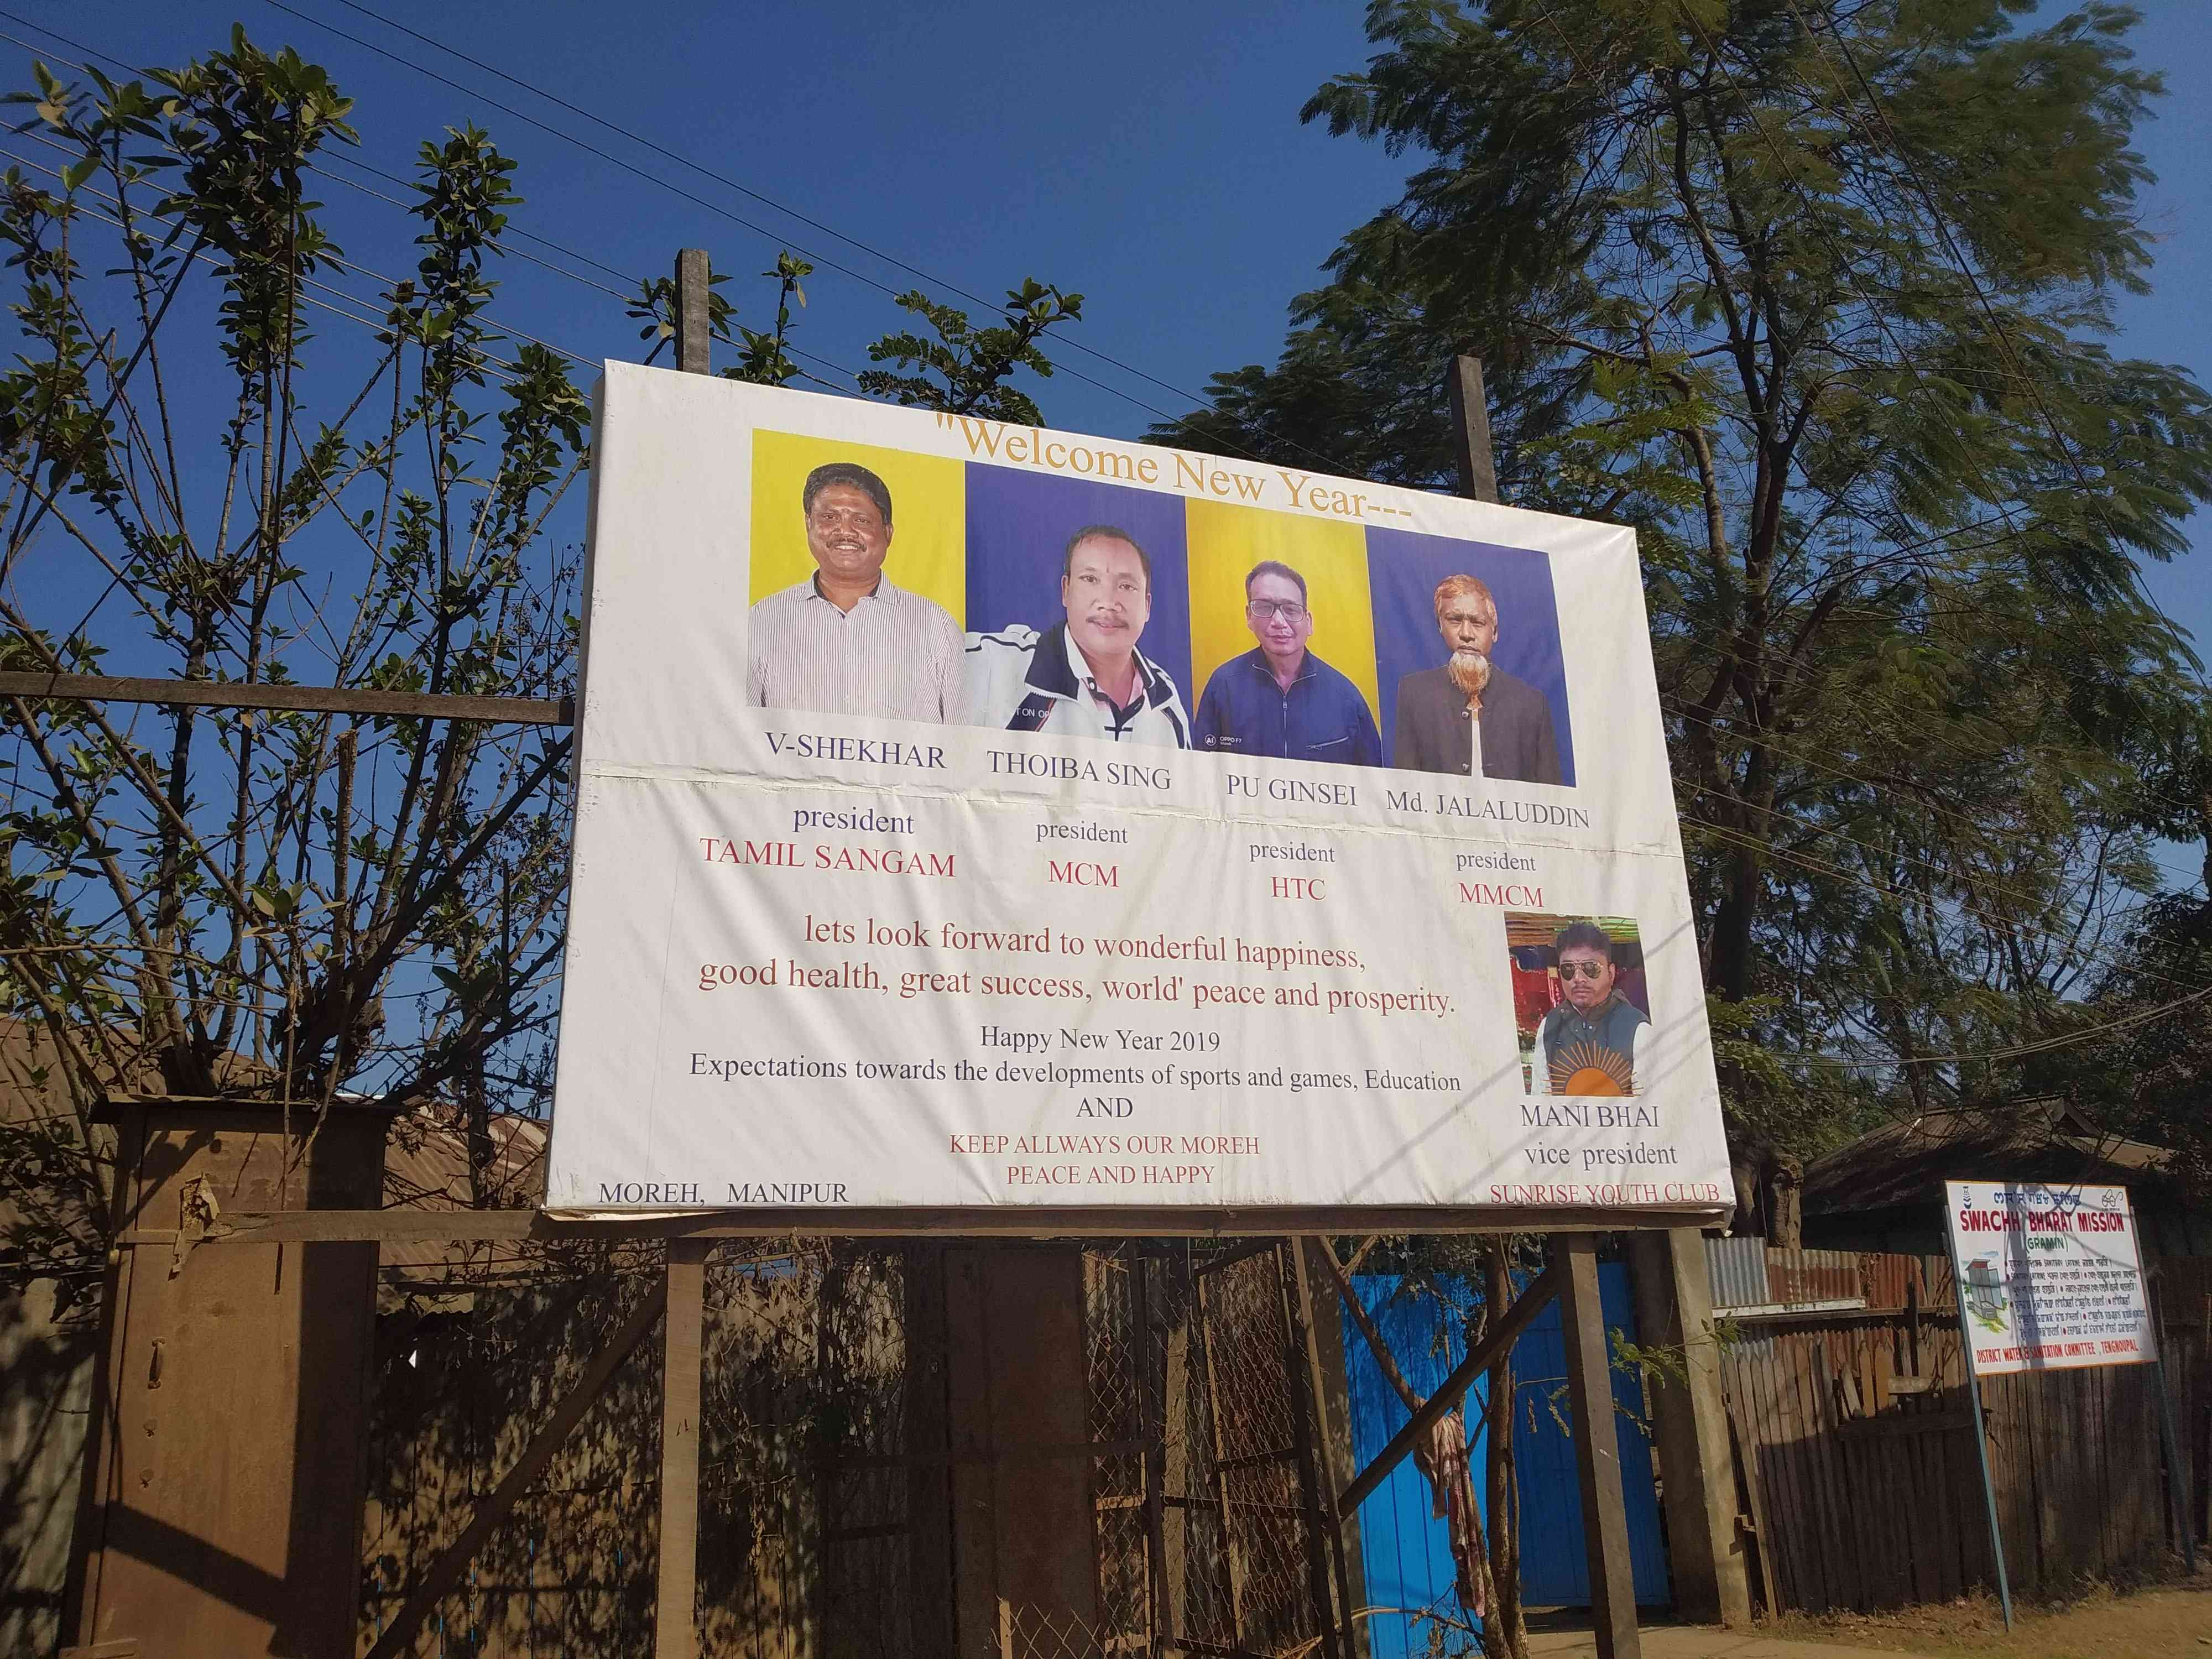 A hoarding in Moreh depicts the leaders of the town's four major communities. Photo credit: Arunabh Saikia